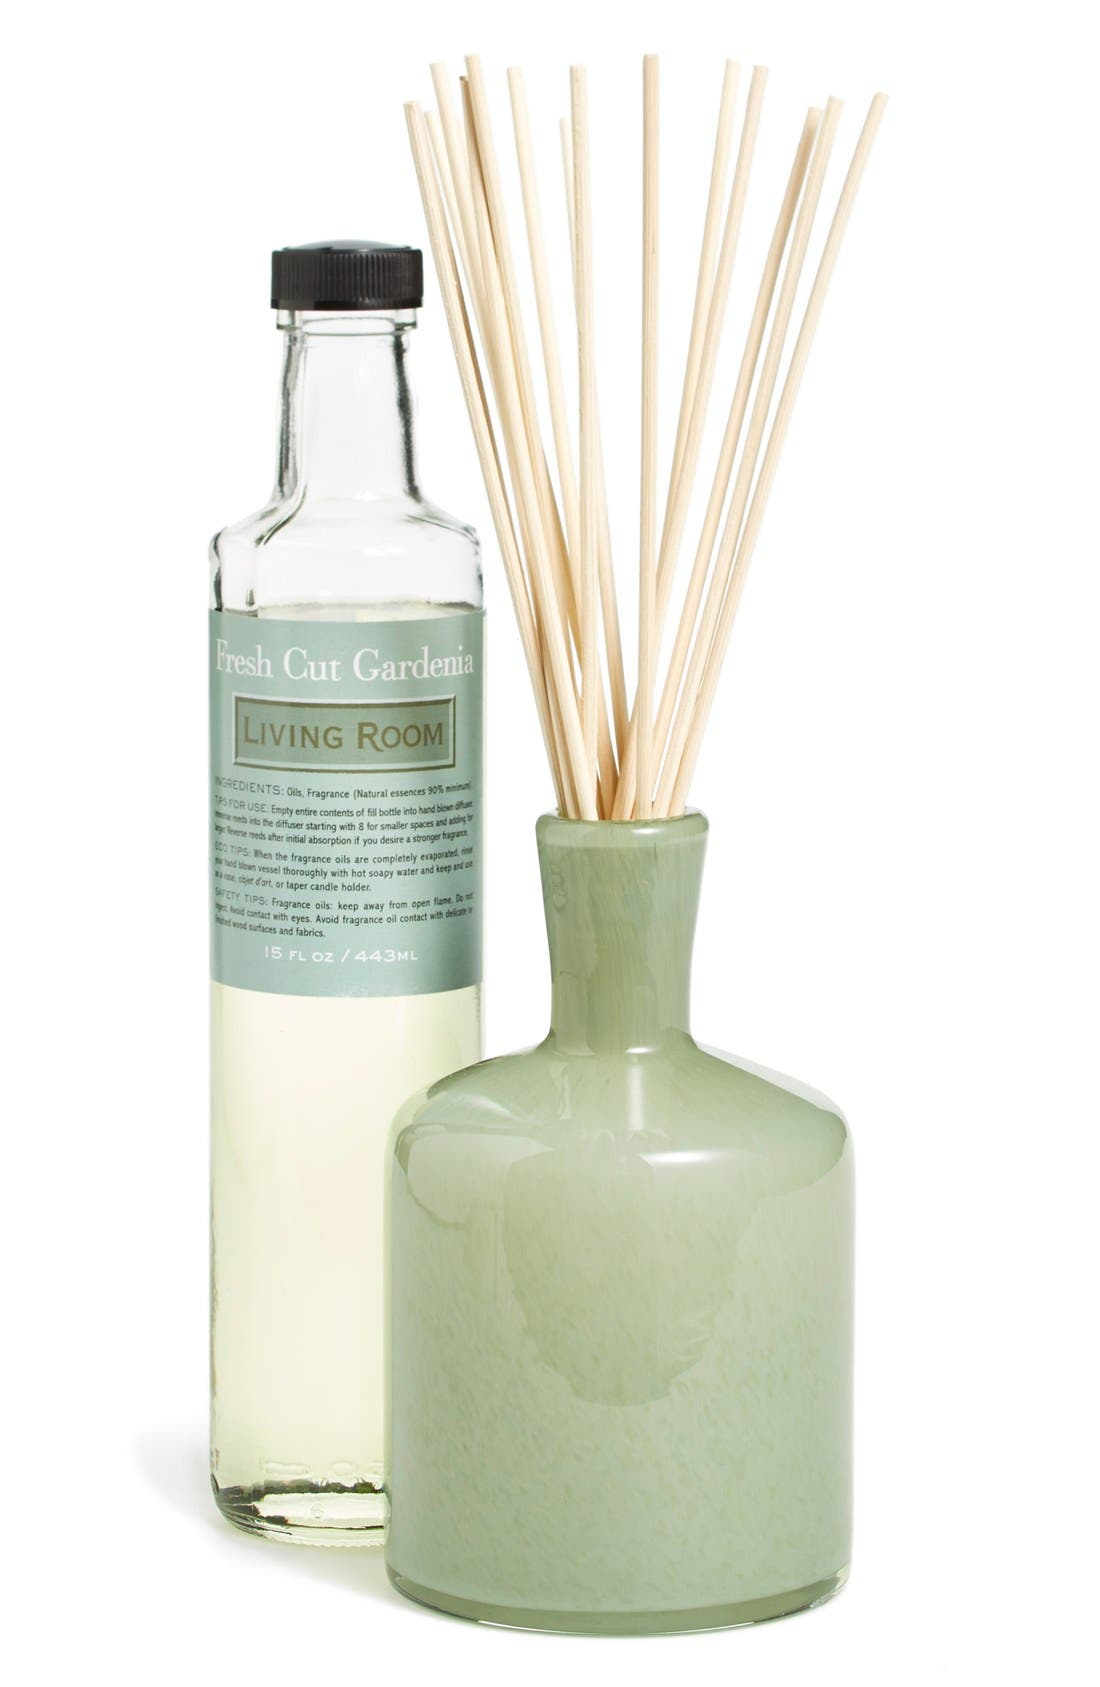 'Fresh Cut Gardenia - Living Room' Fragrance Diffuser,                             Main thumbnail 1, color,                             No Color